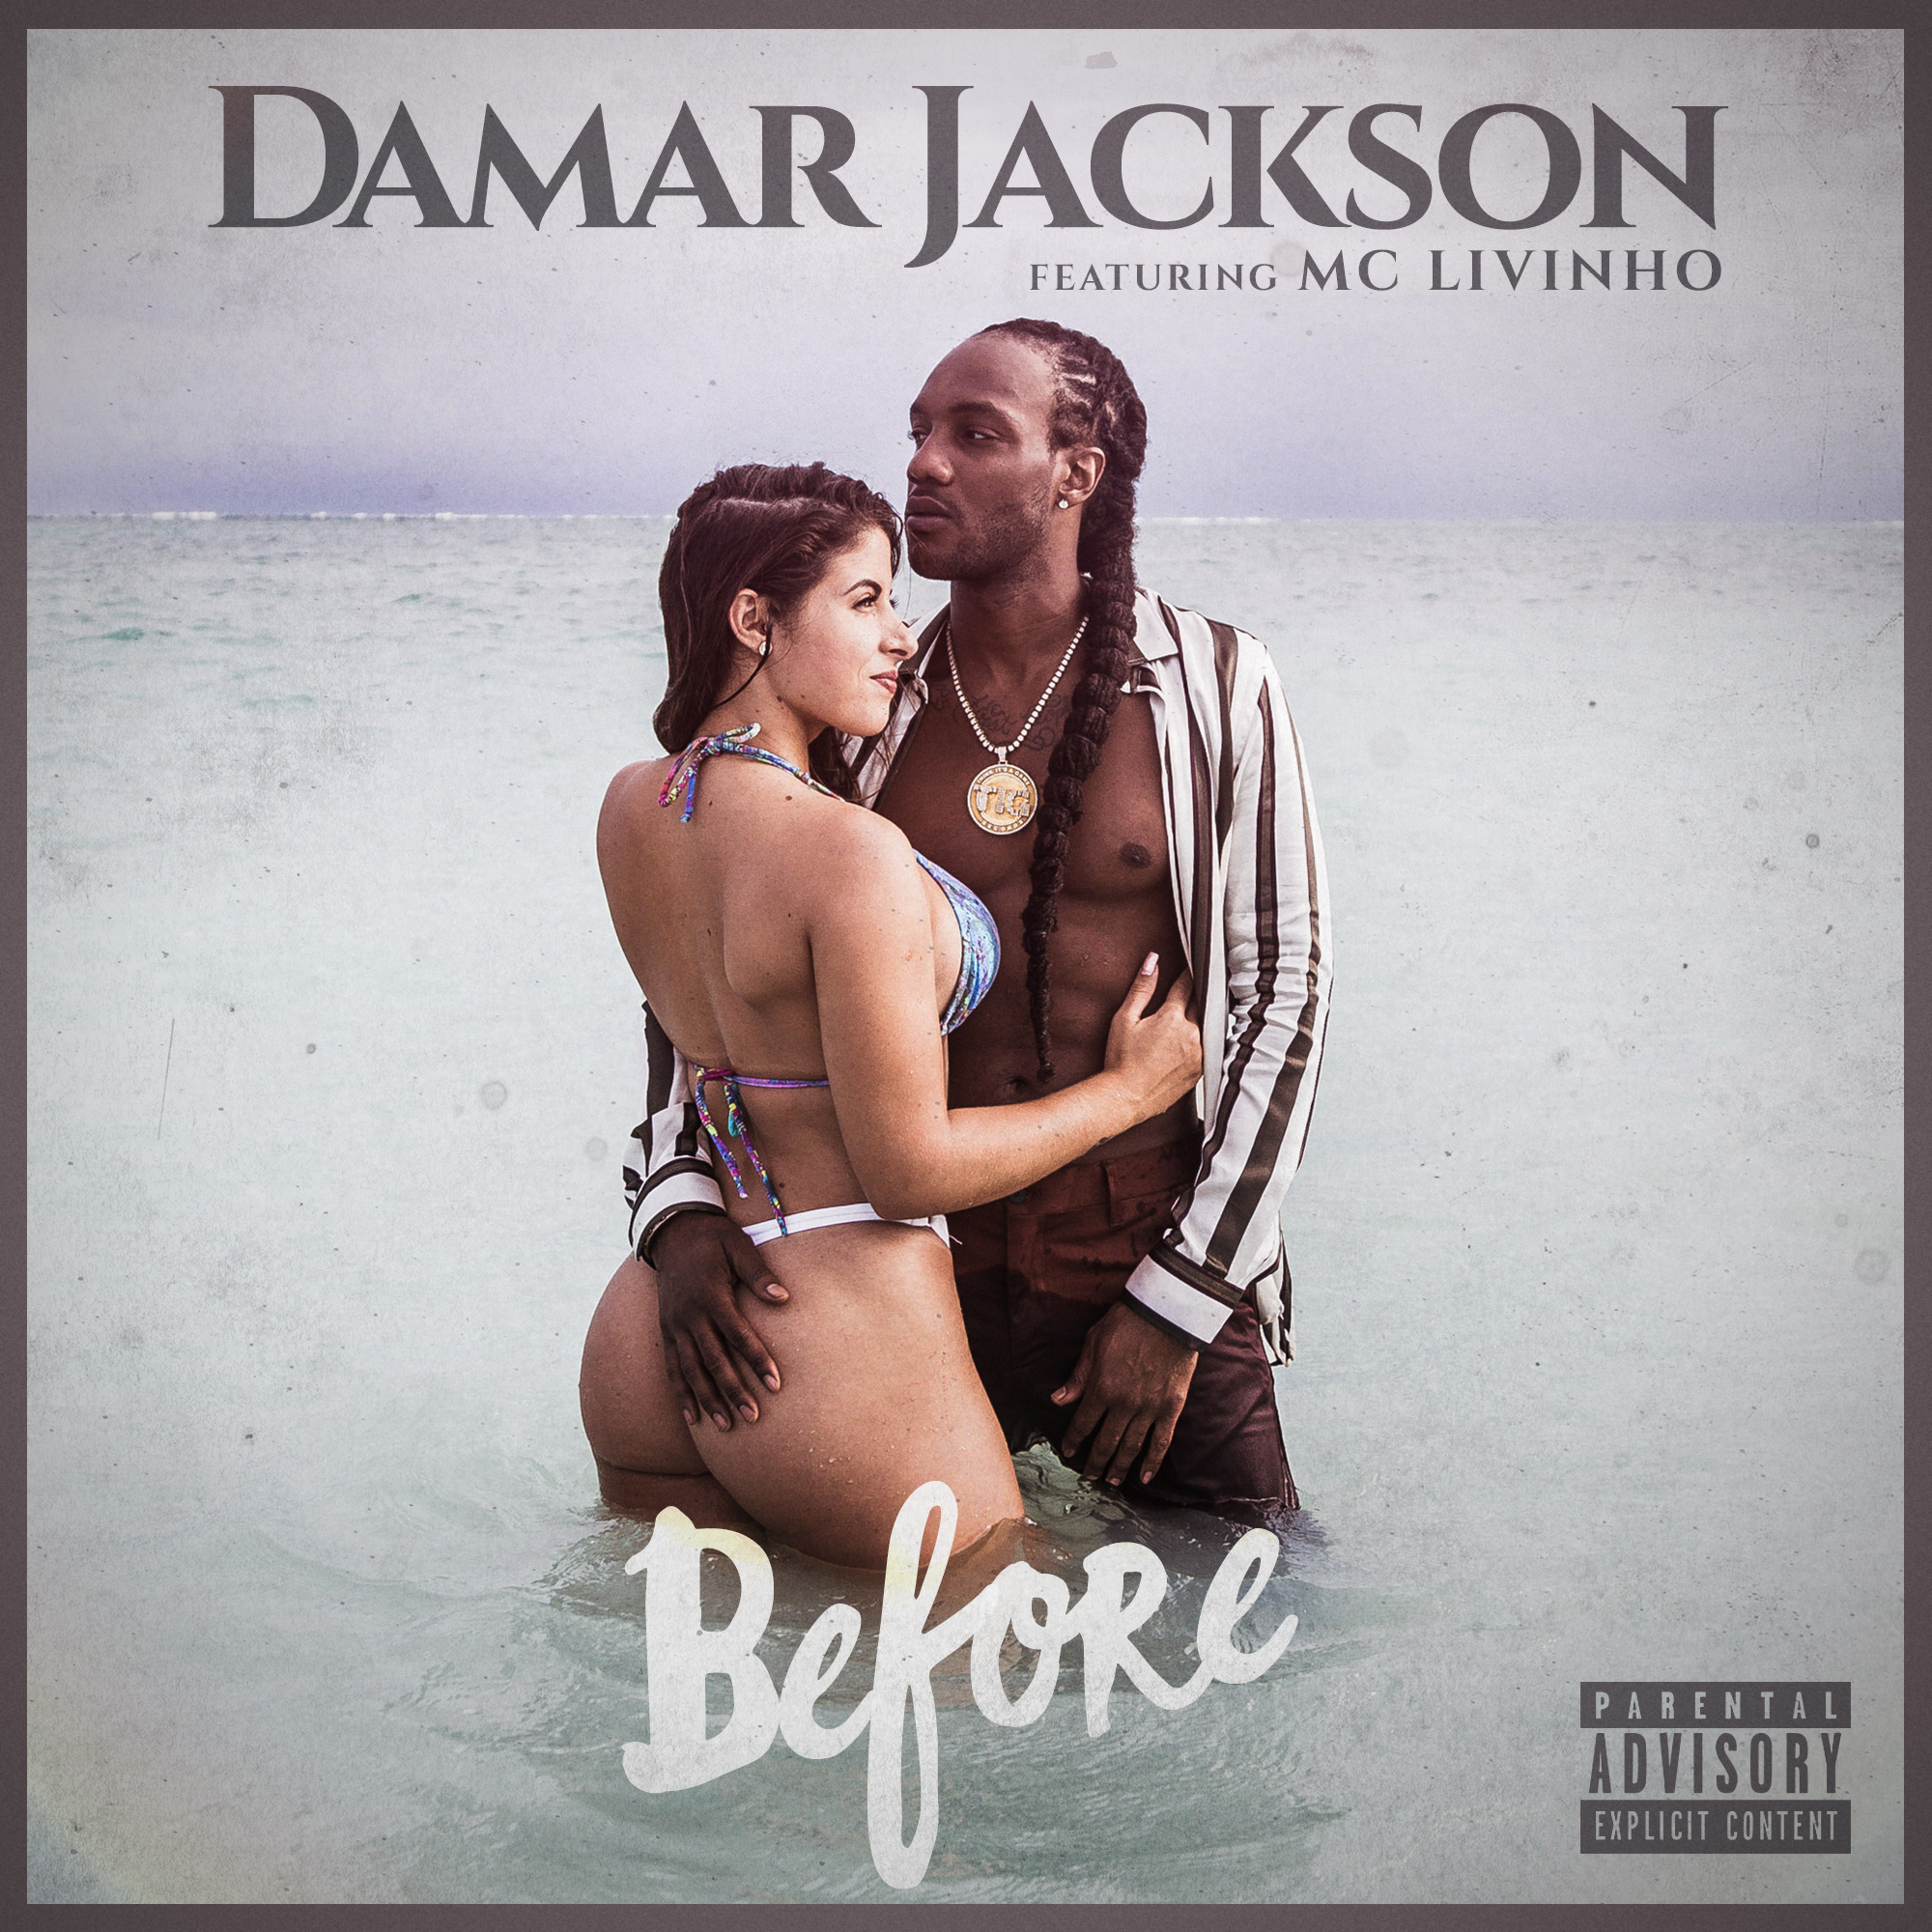 damar-jackson-before-v3.jpg